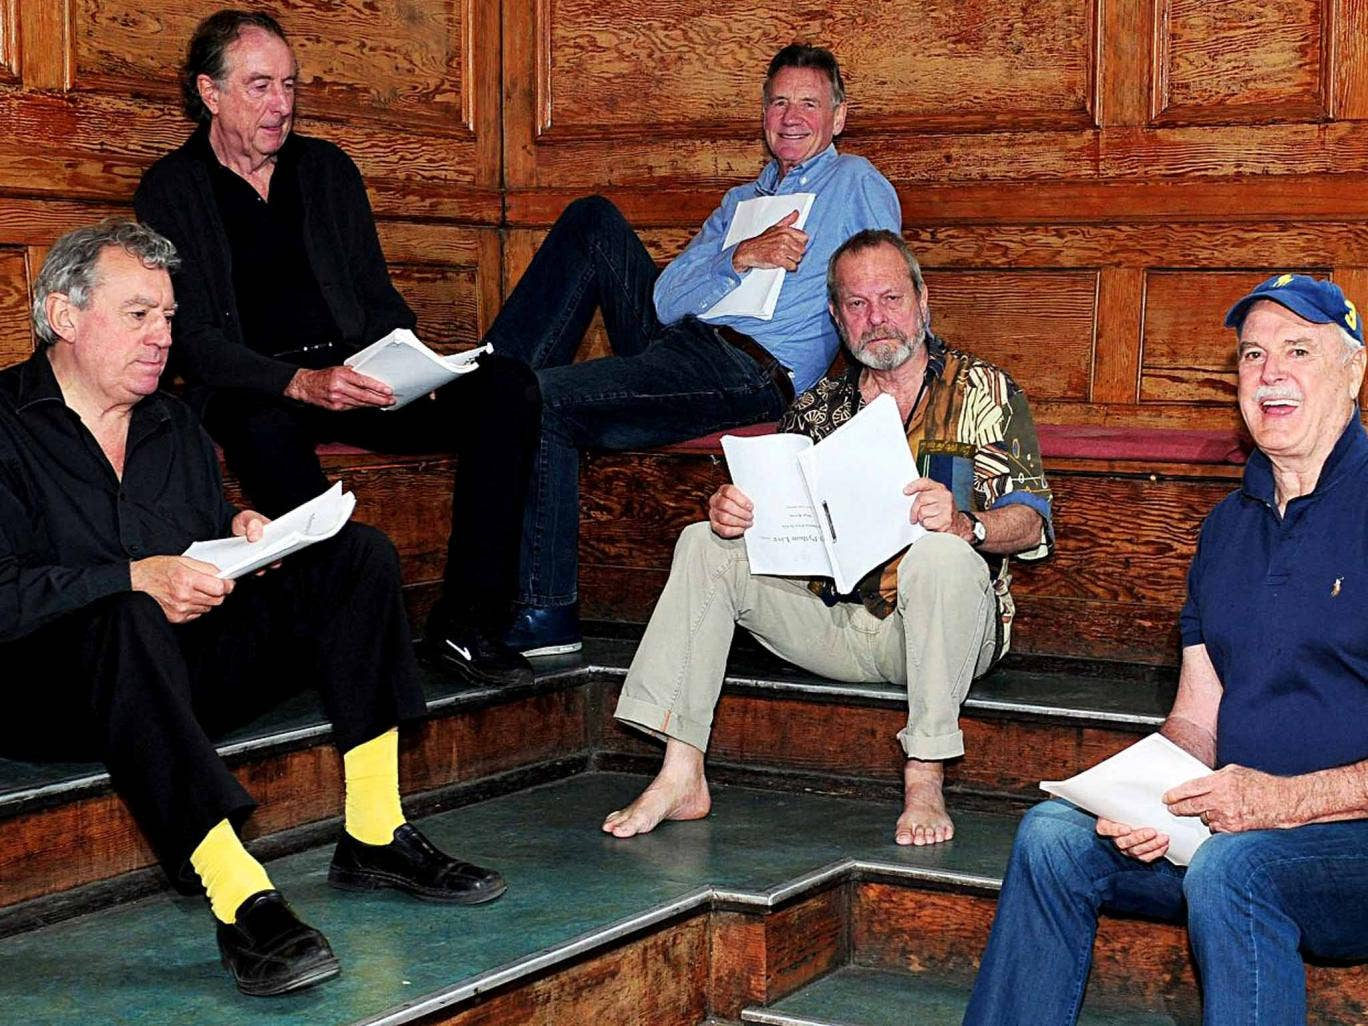 Old men behaving badly: (from left) Terry Jones, Eric Idle, Michael Palin, Terry Gilliam and John Cleese in rehearsals for the London show